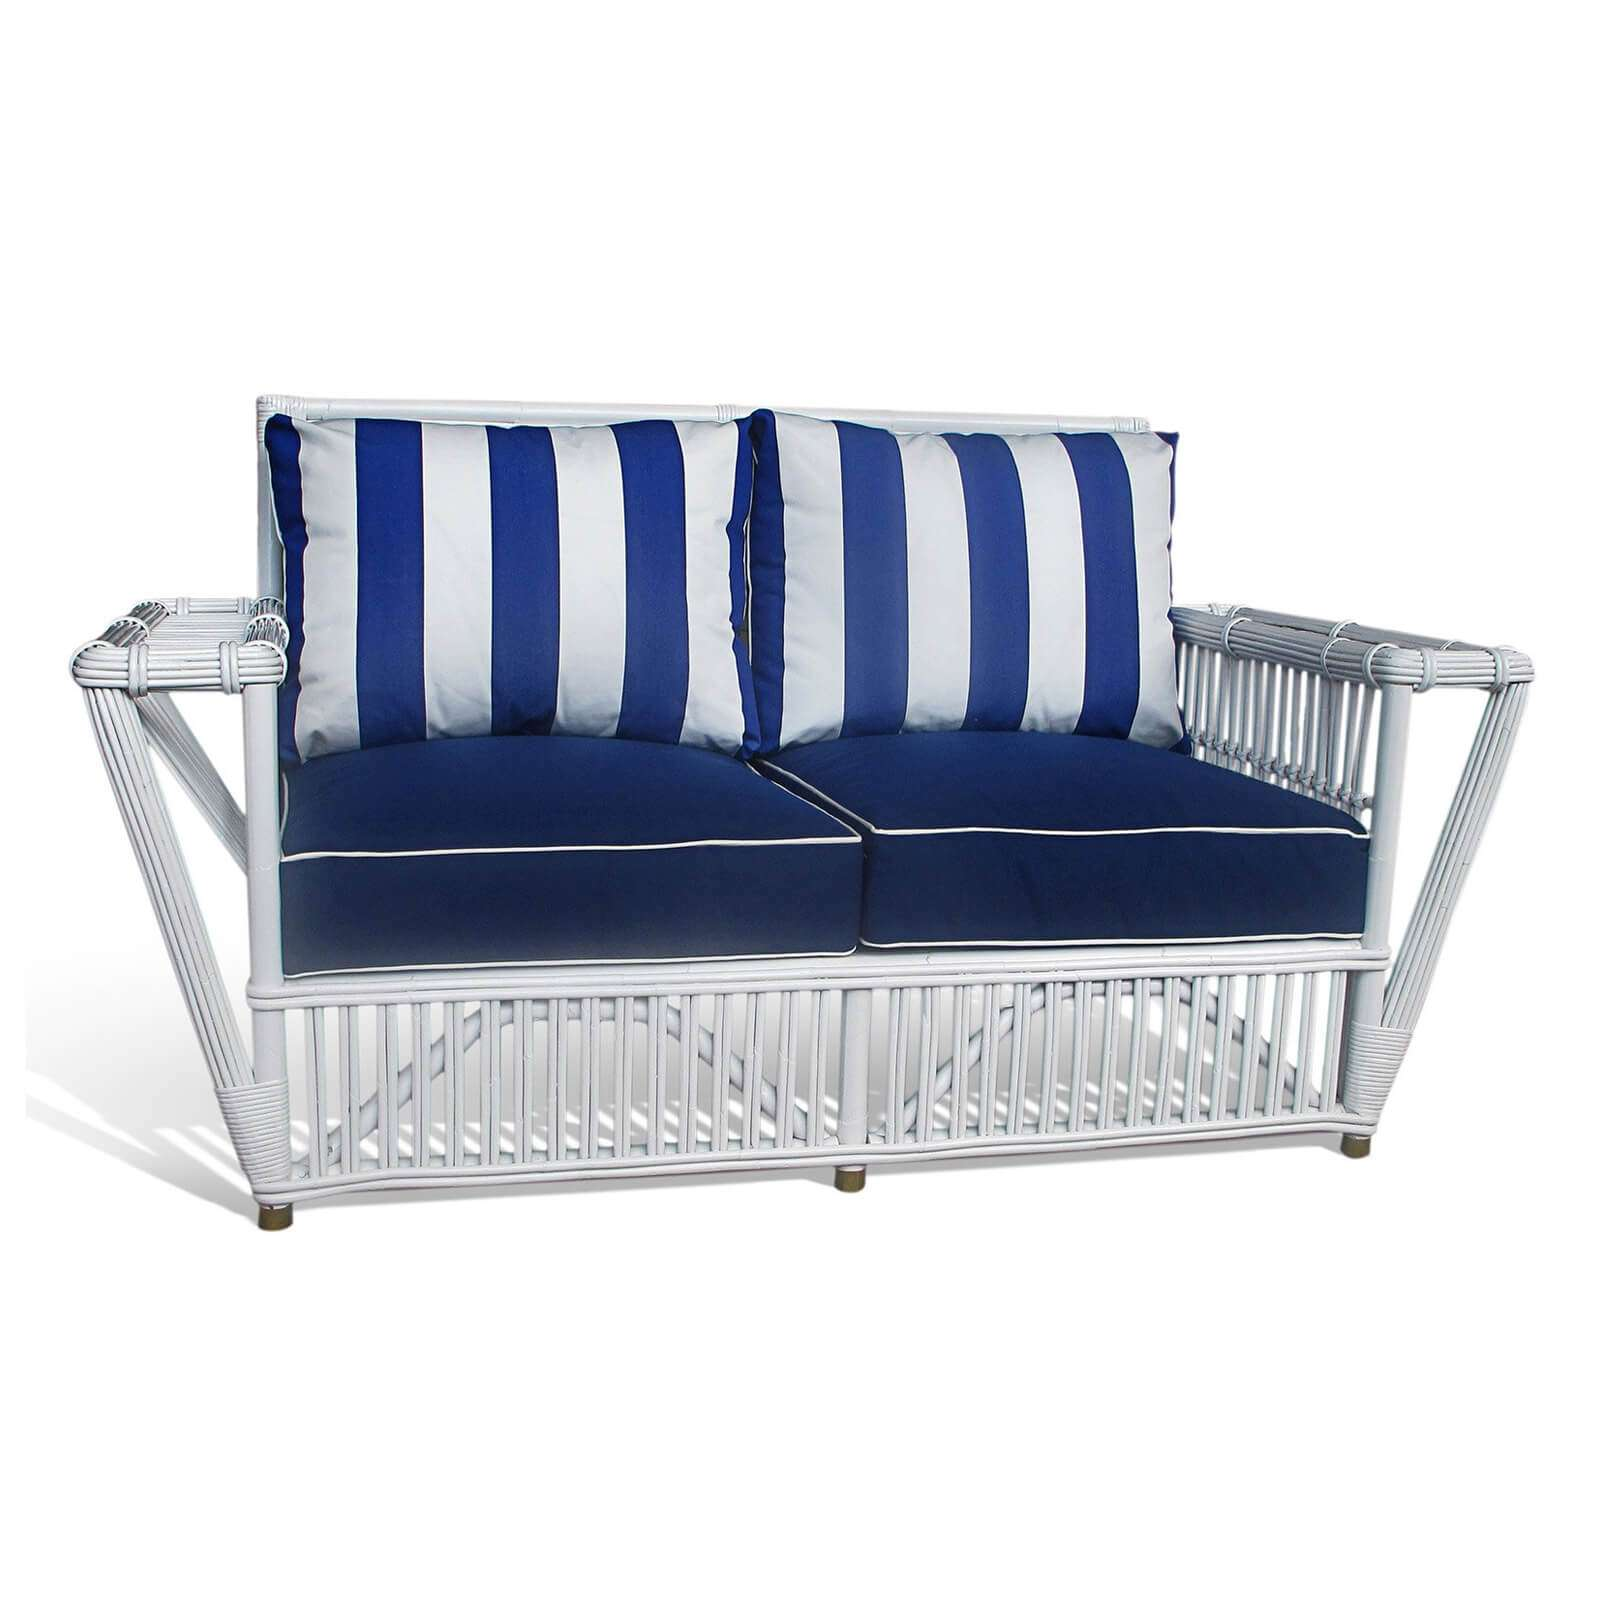 BUNGALOW LOVE SEAT 02 - STUART MEMBERY HOME COLLECTION